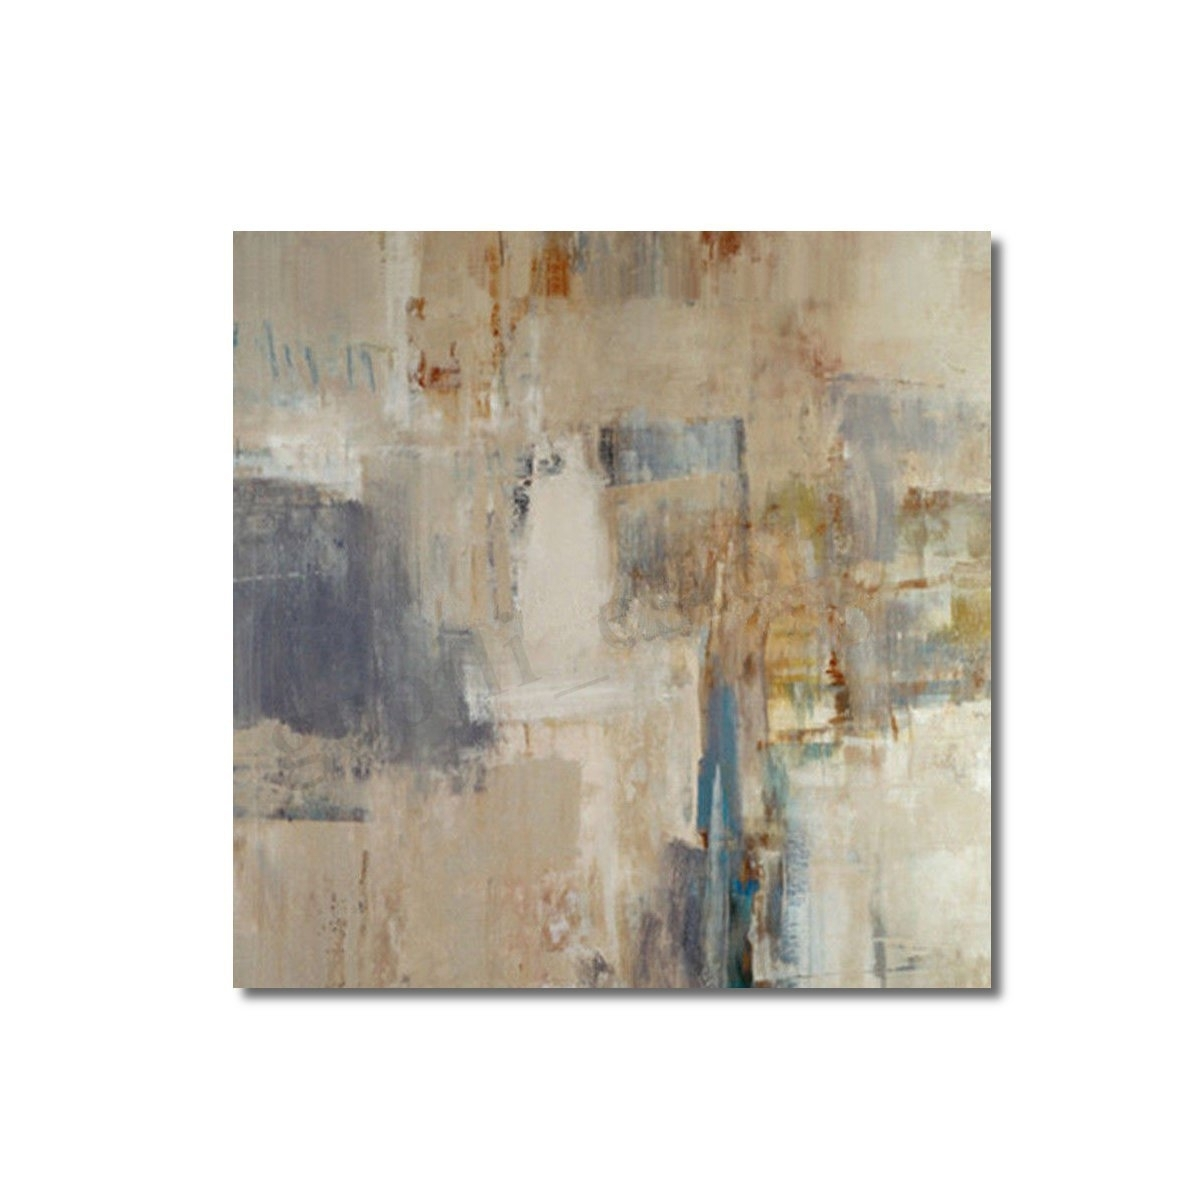 24X24'' Modern Abstract Oil Painting Canvas Wall Art Printed intended for Modern Abstract Painting Wall Art (Image 6 of 20)